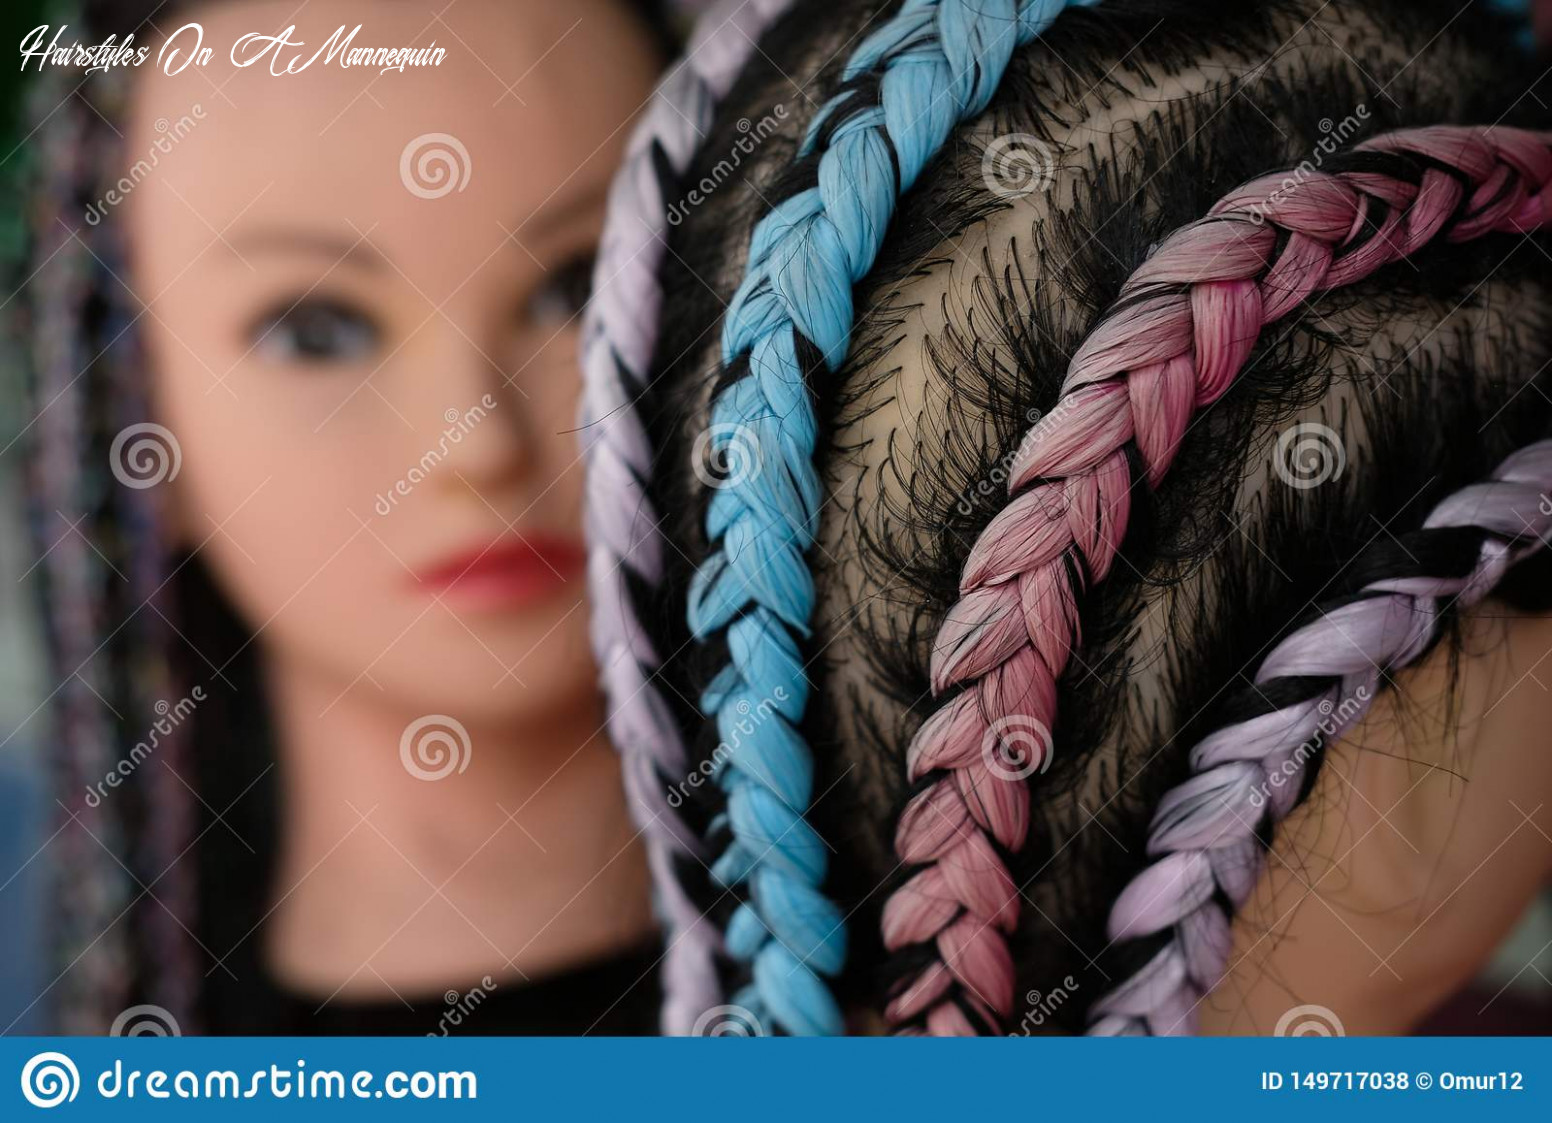 Street mannequin for hairstyles and braids stock photo image of